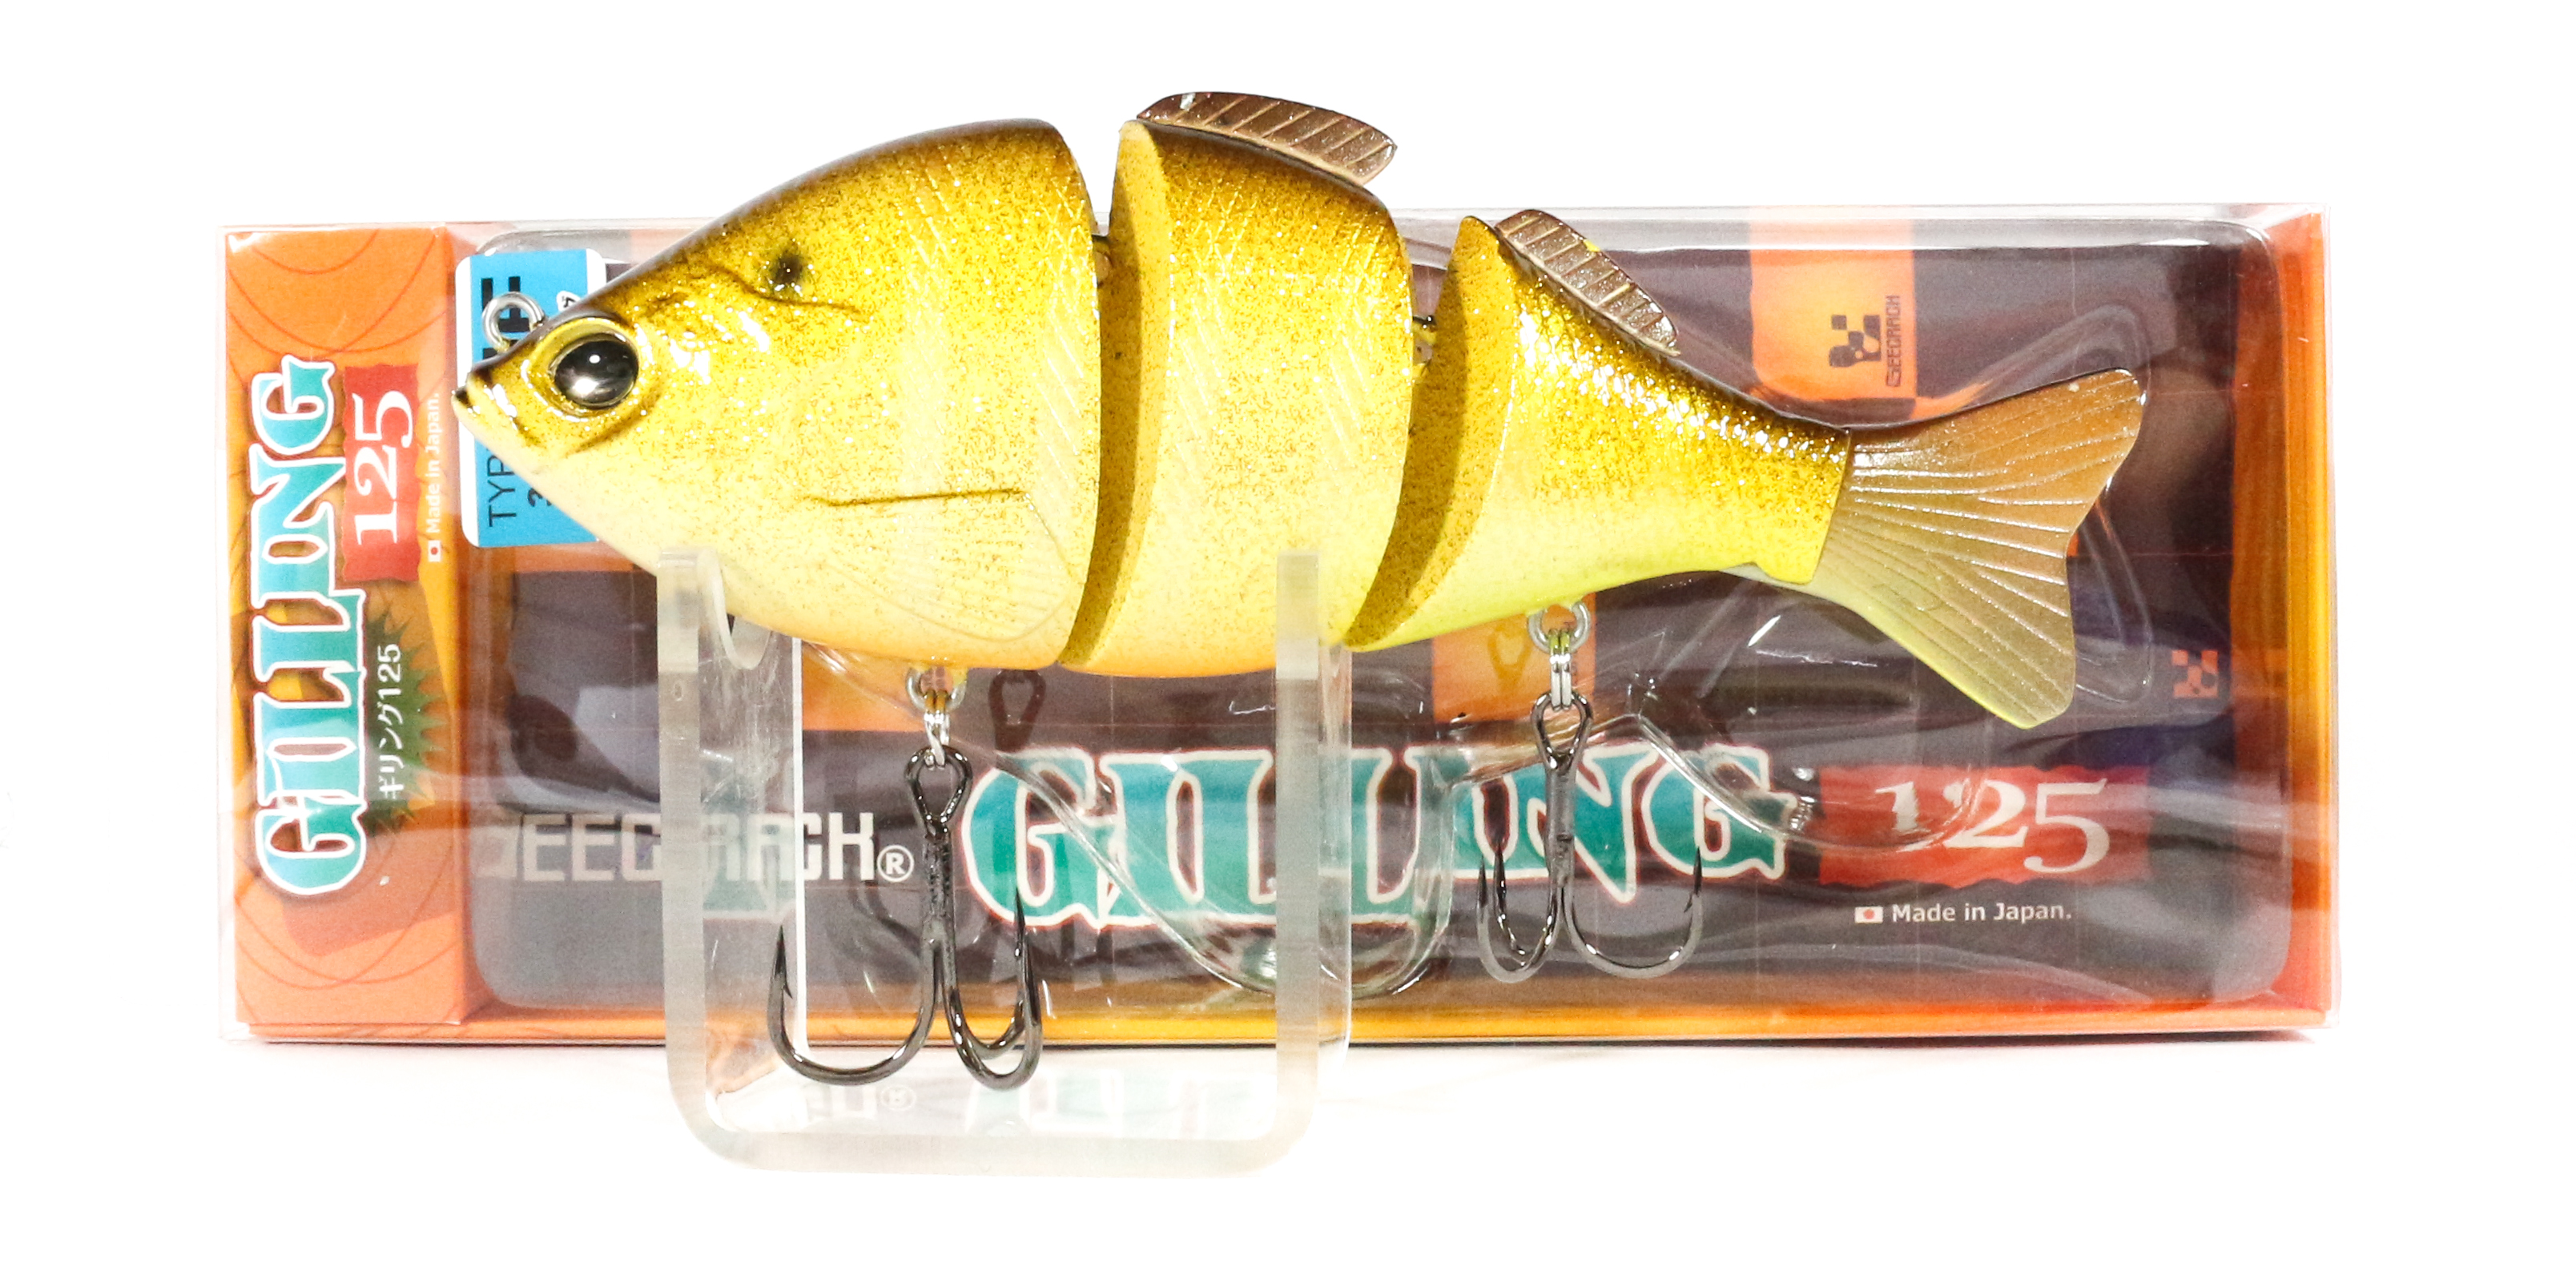 Sale Gee Crack Gilling 125 HF High Floating Lure 011 (2056)